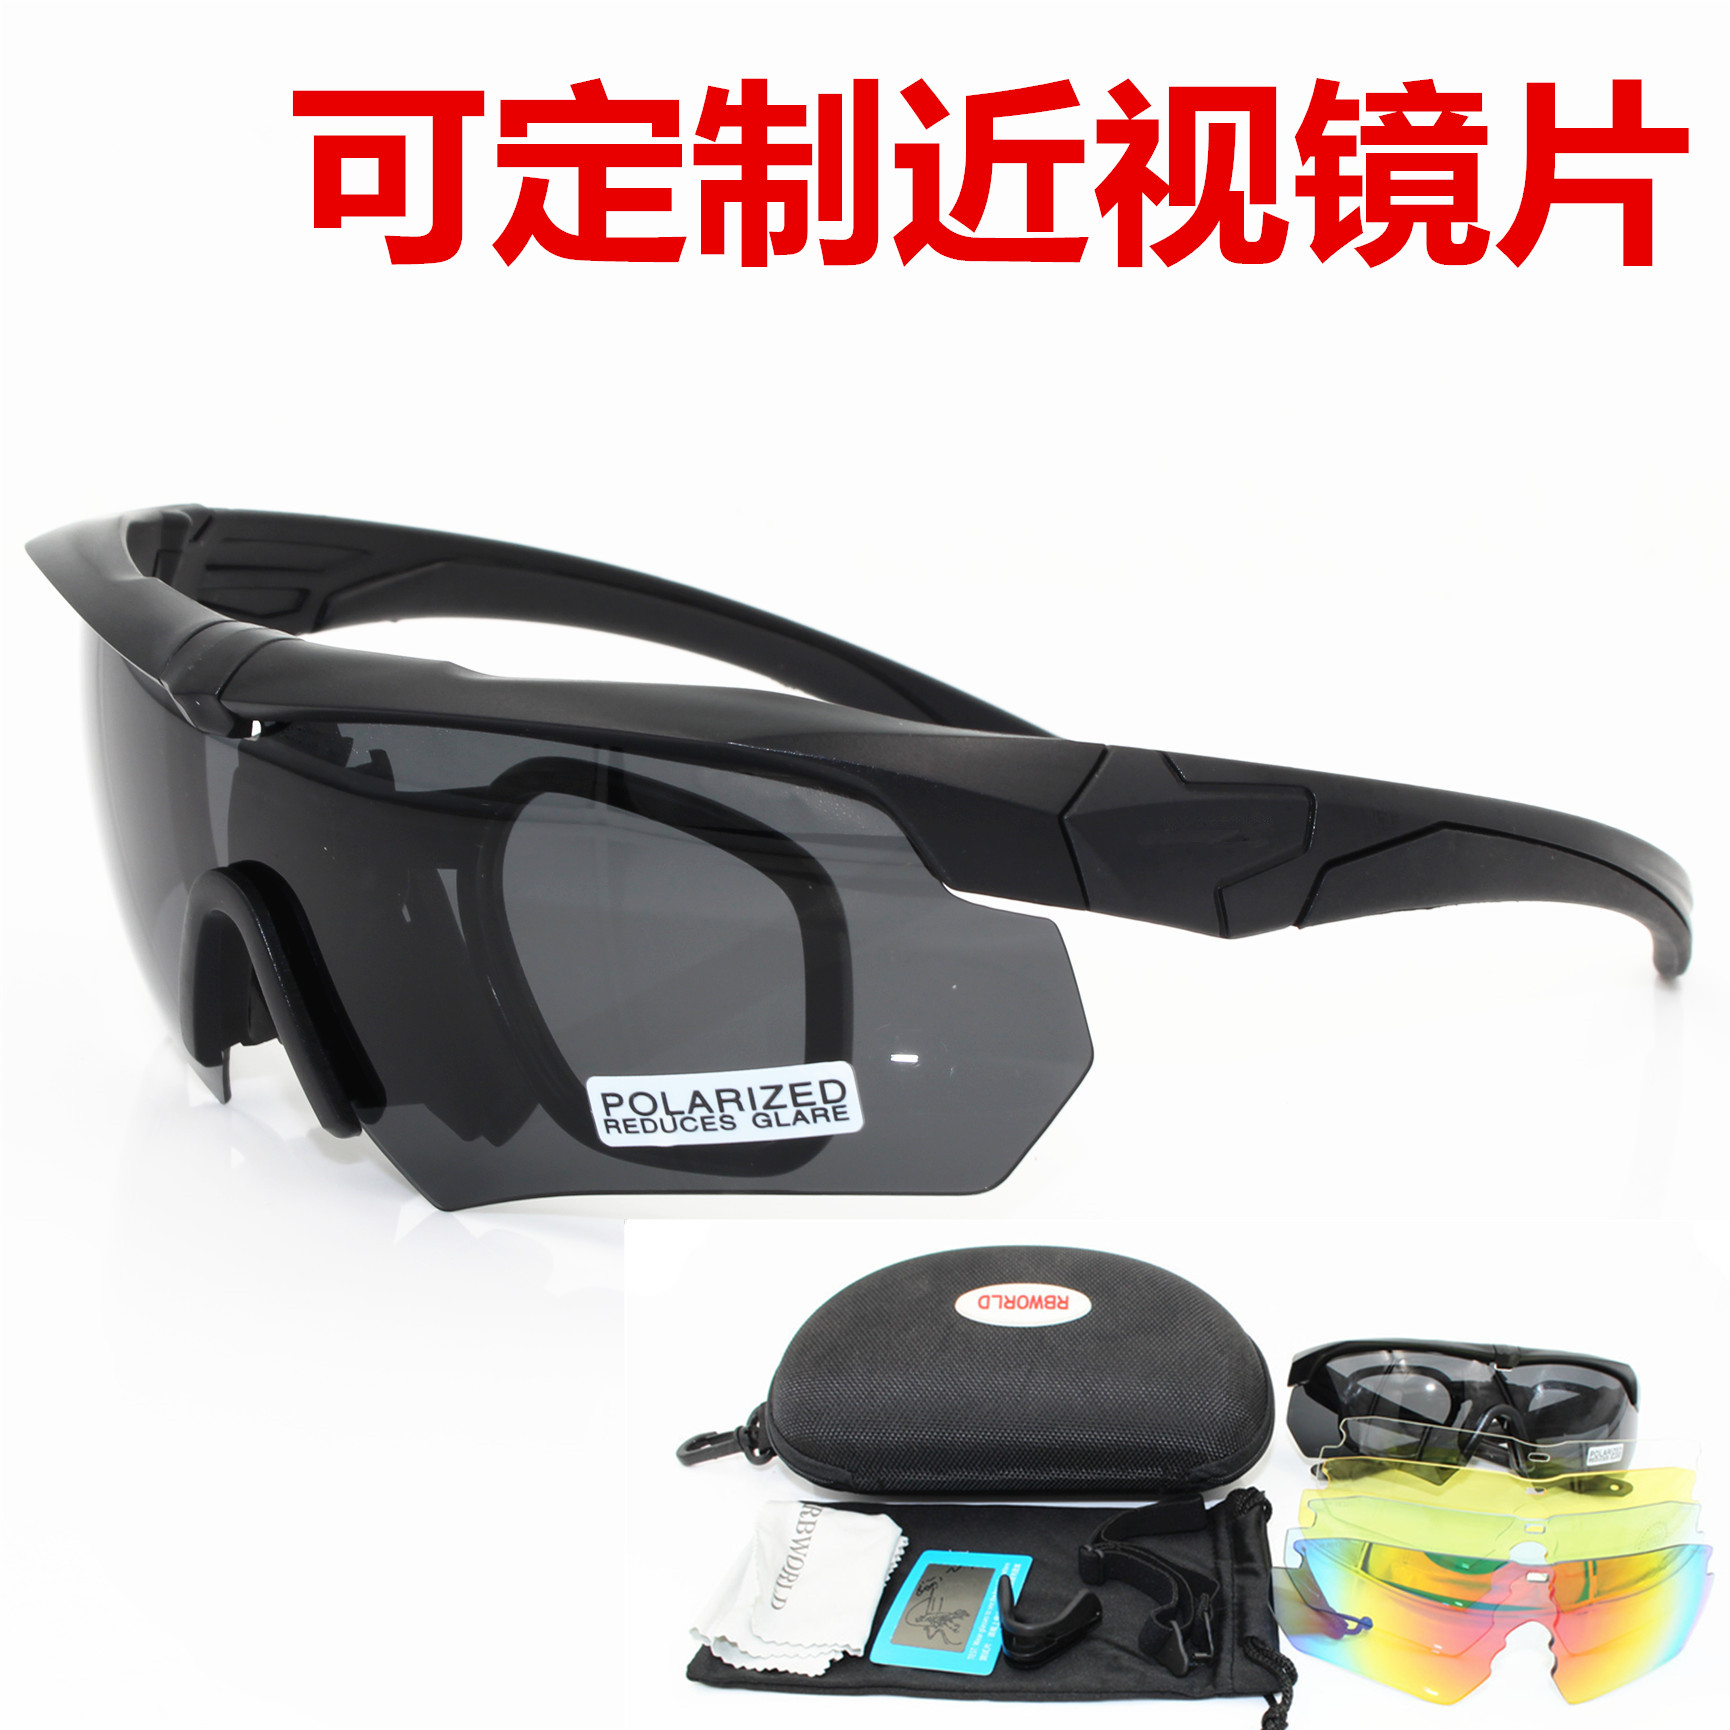 38eab2d091 Crossbow crossbow tactical glasses polarized outdoor Army fan shooting  bulletproof goggles riding myopia sunglasses